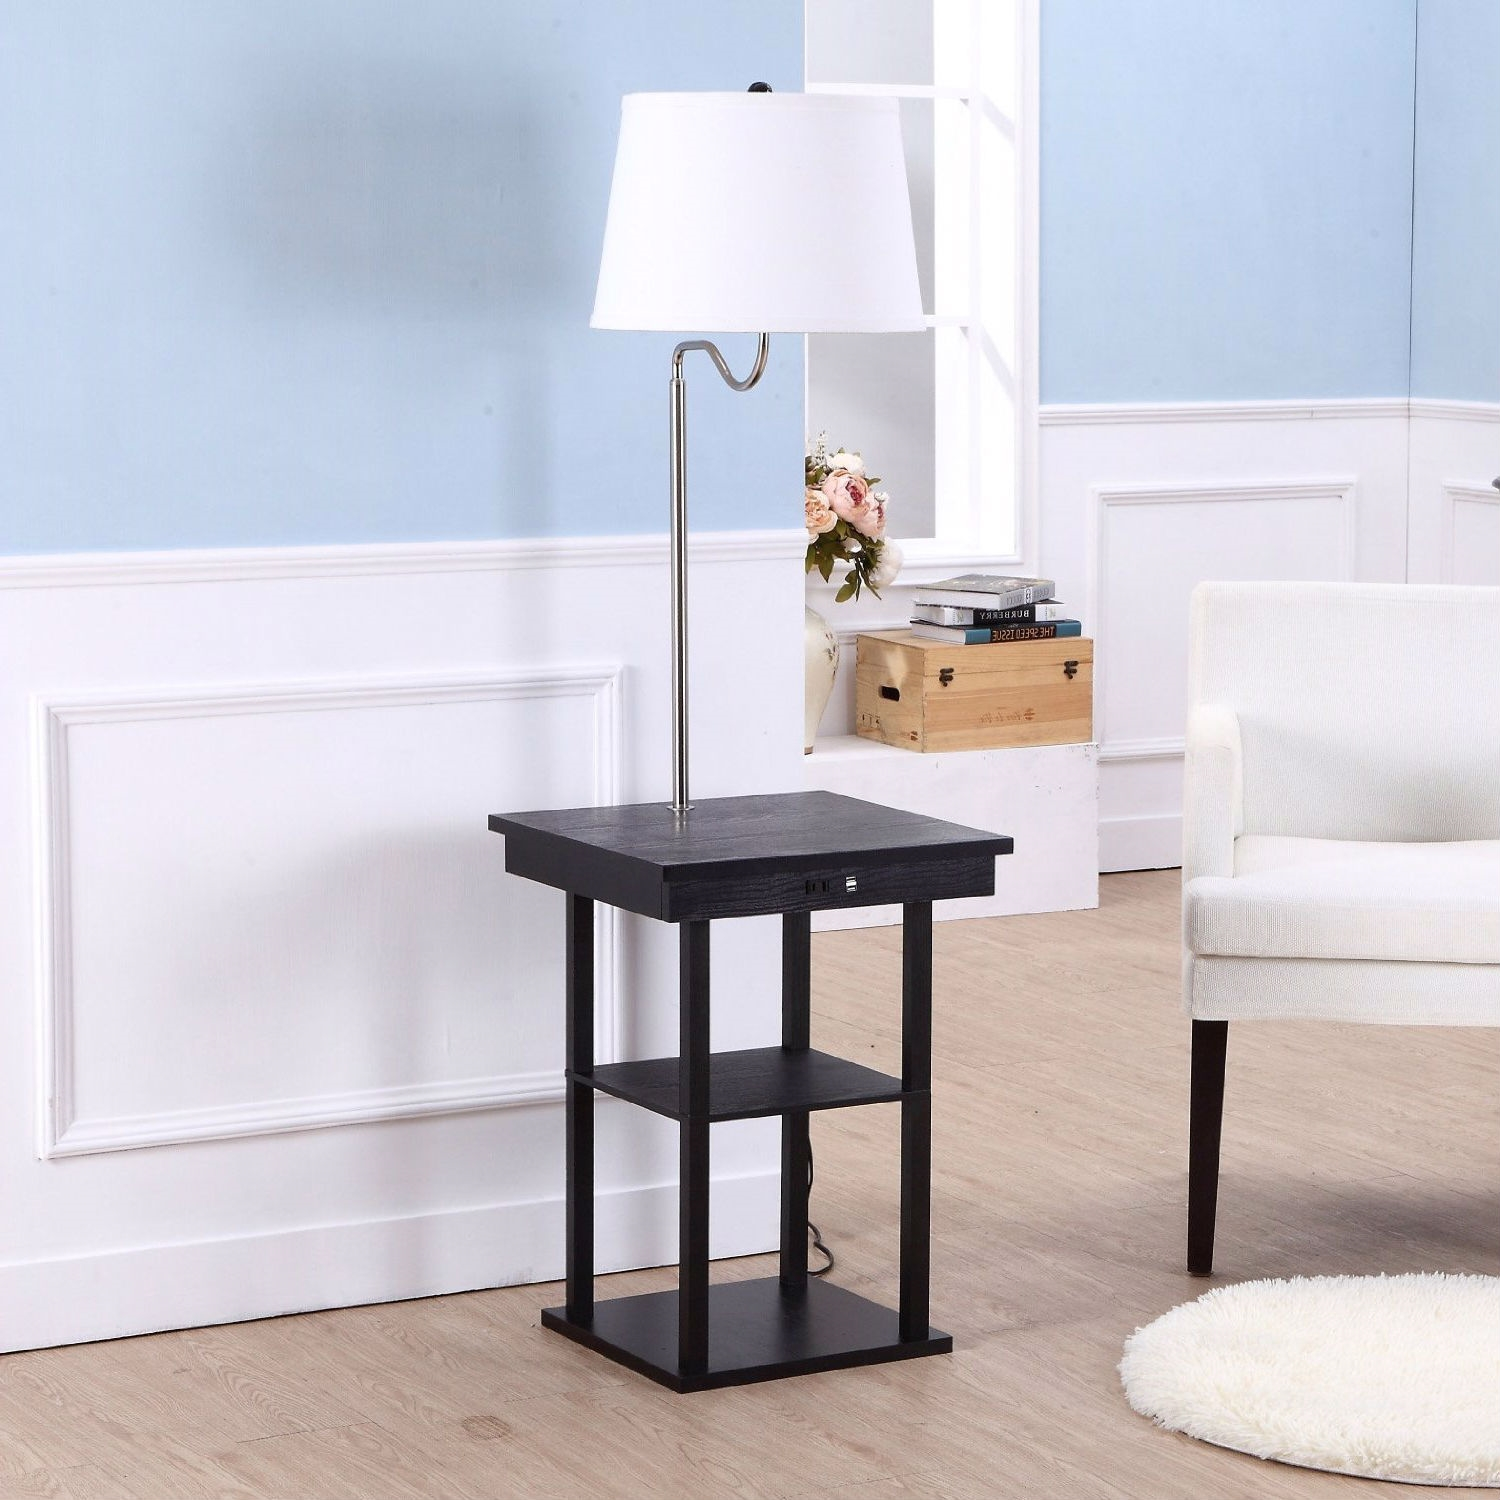 2 In1 Modern Side Table Floor Lamp With